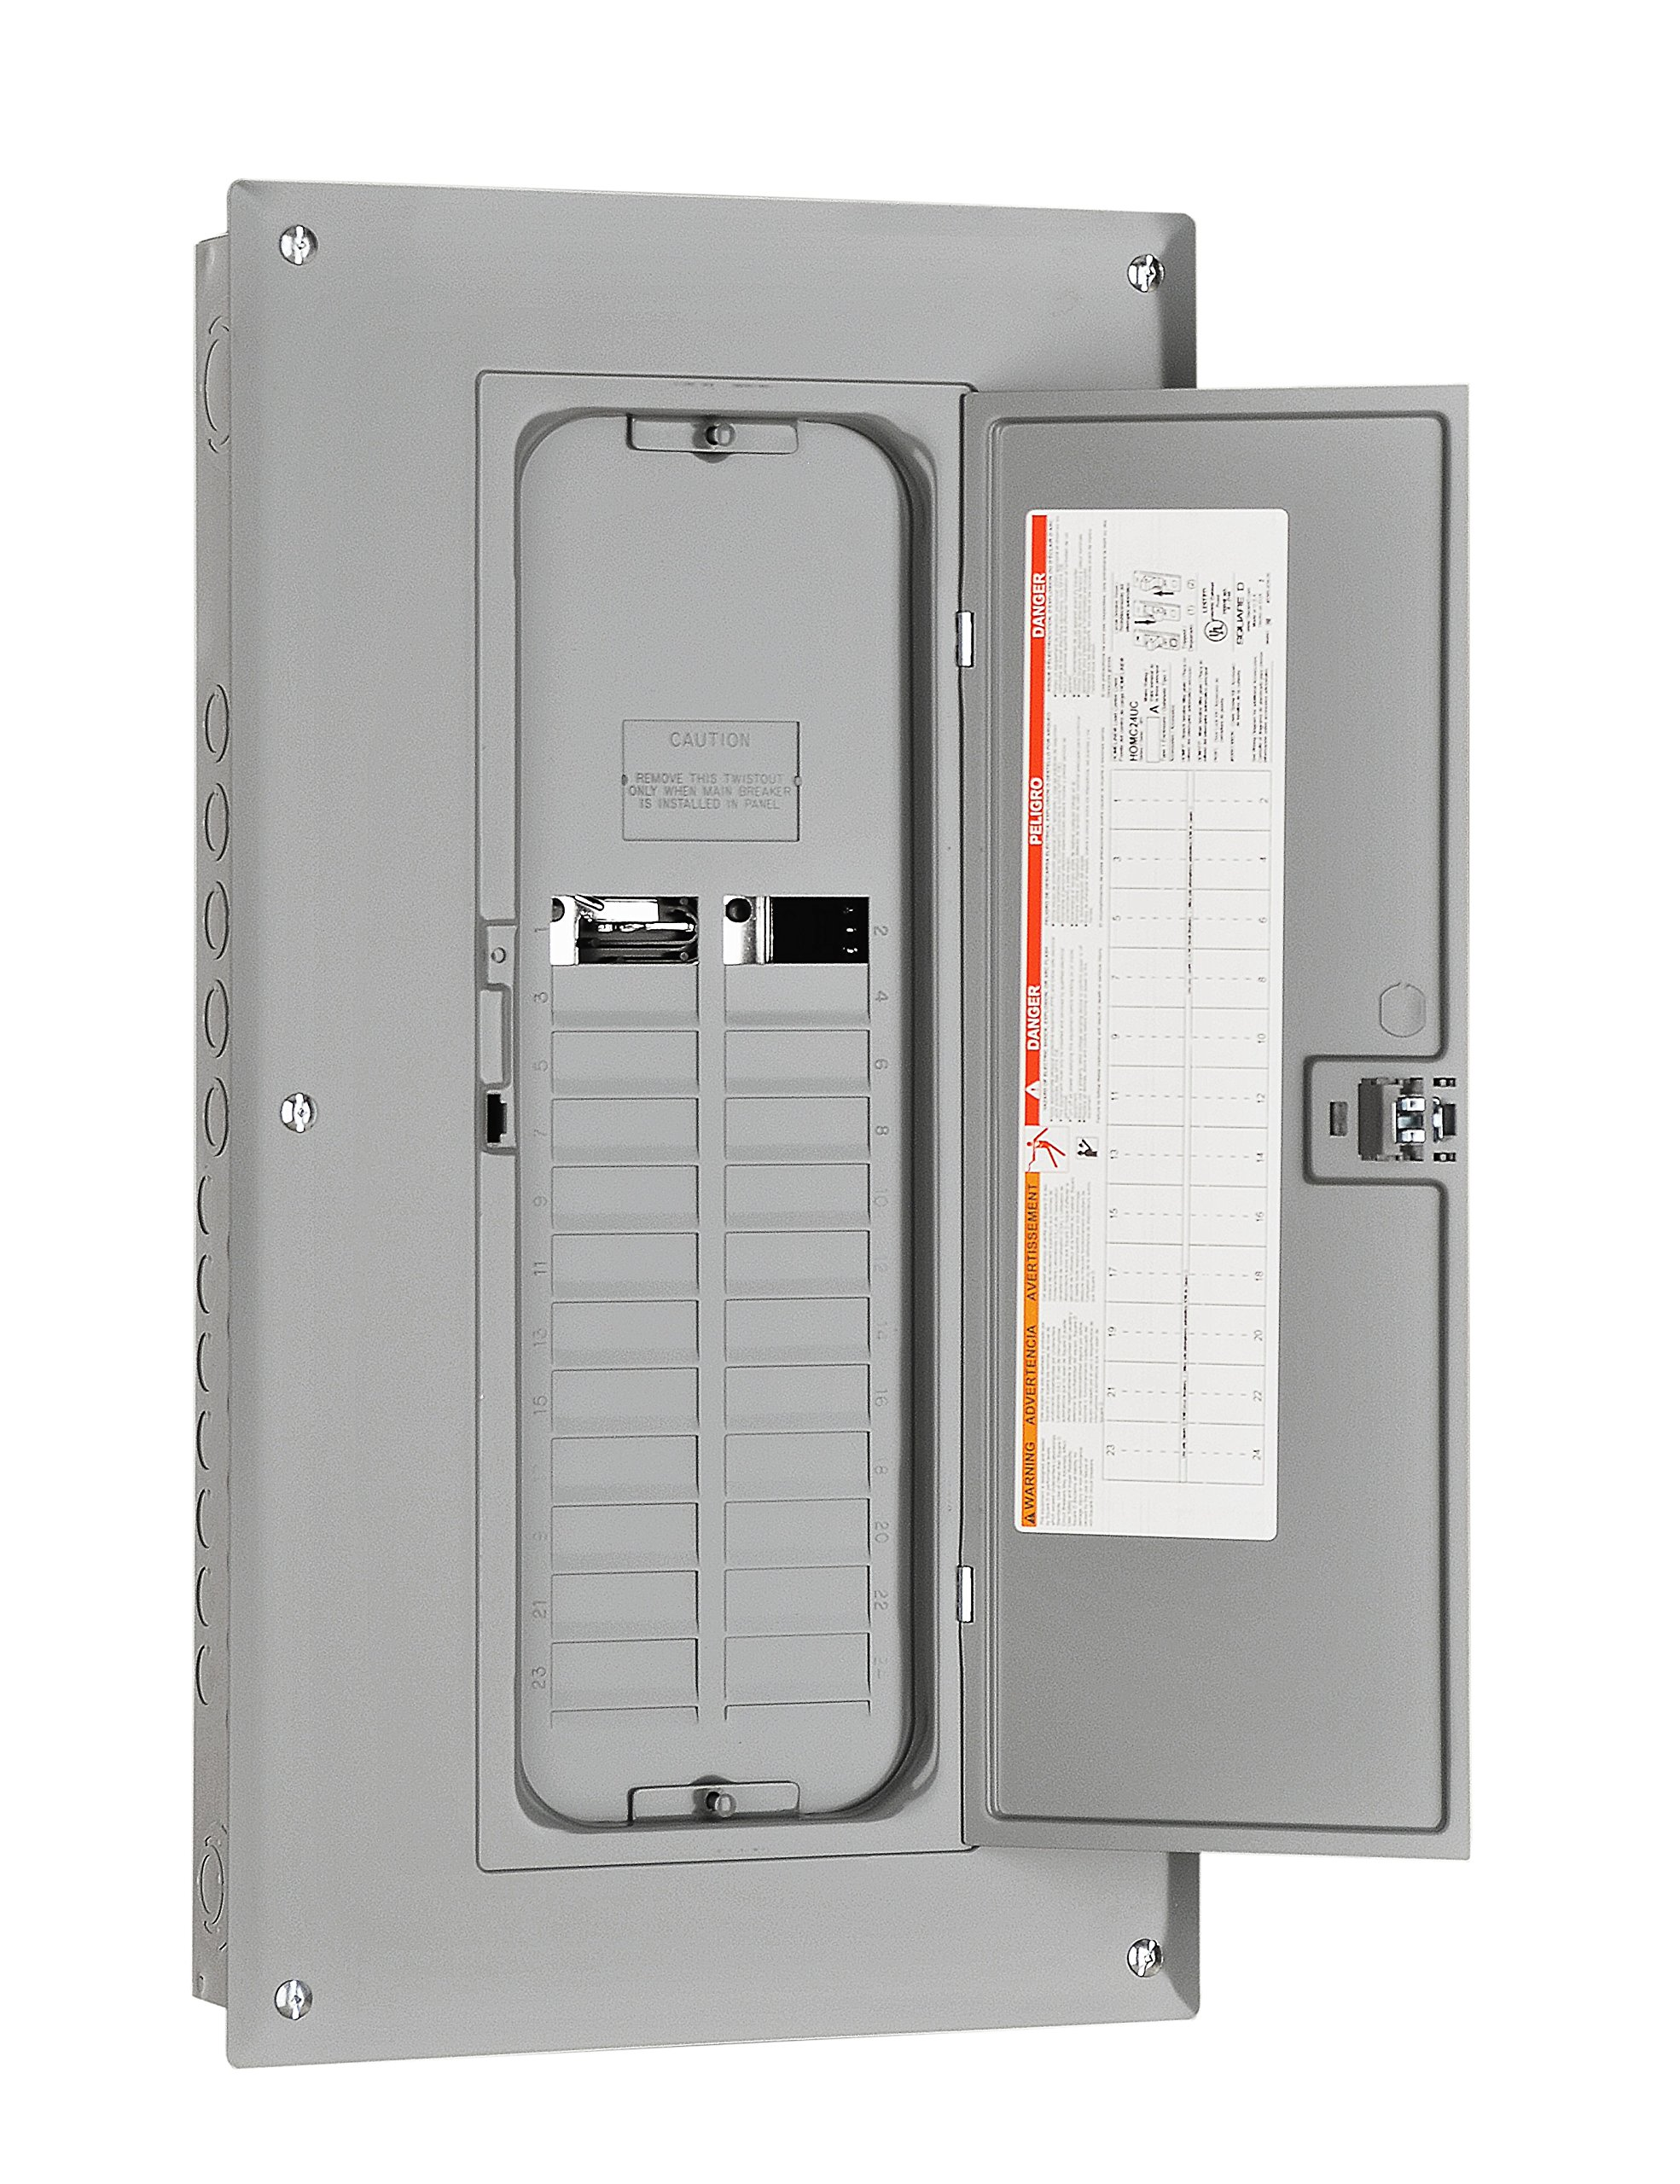 Plug-on Neutral Ready Square D by Schneider Electric HOM1632L225PRB Homeline 225-Amp 16-Space 32-Circuit Outdoor Main Lugs Load Center with Cover